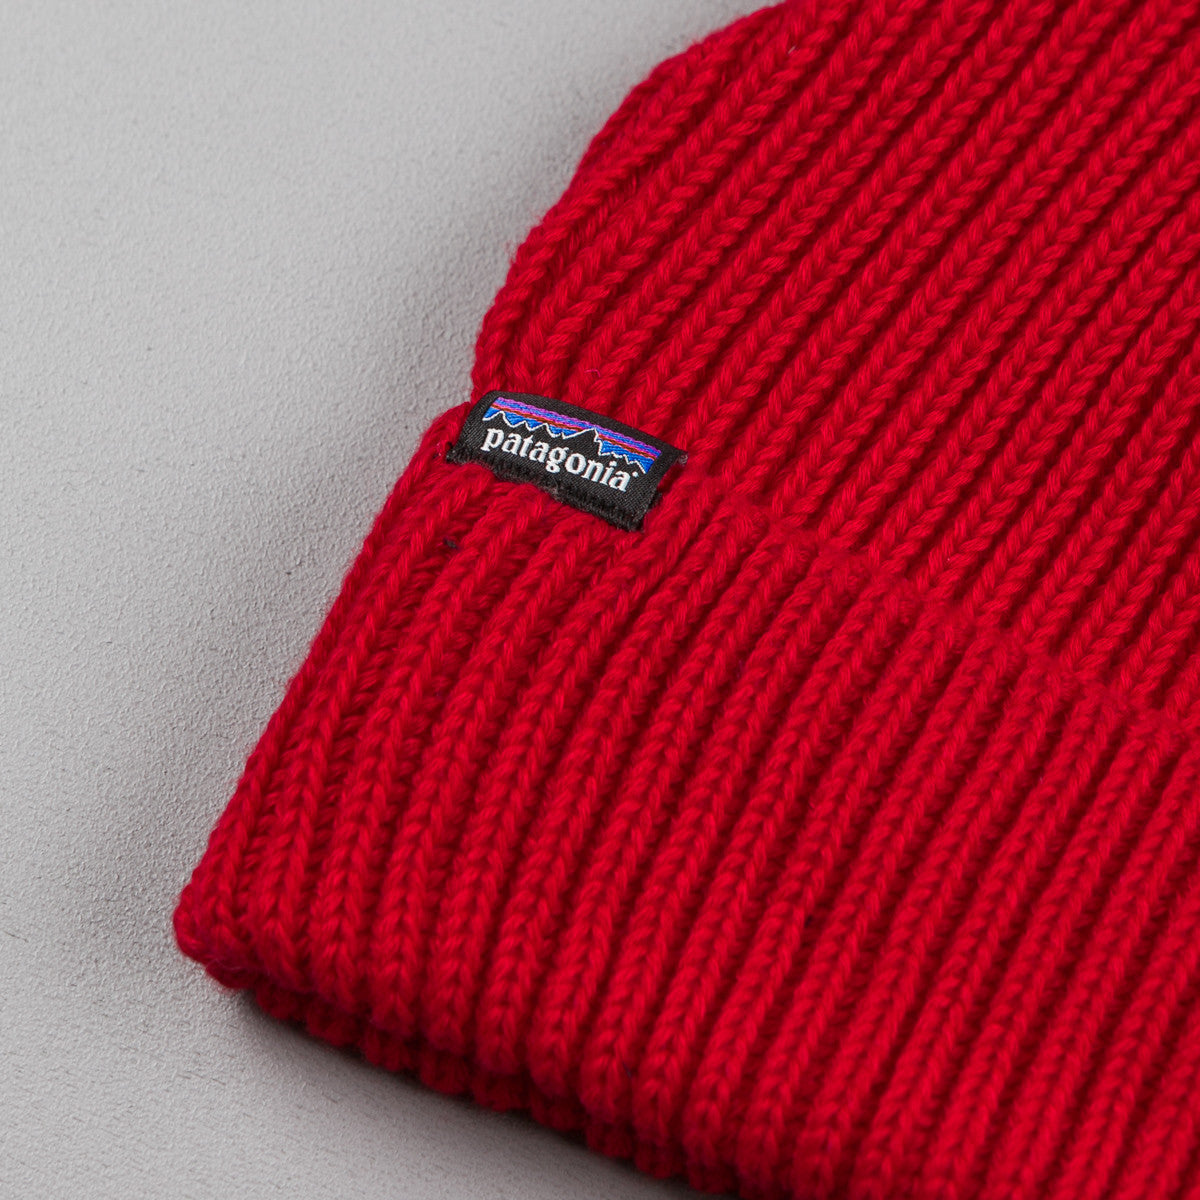 Patagonia Fisherman's Rolled Beanie -  French Red